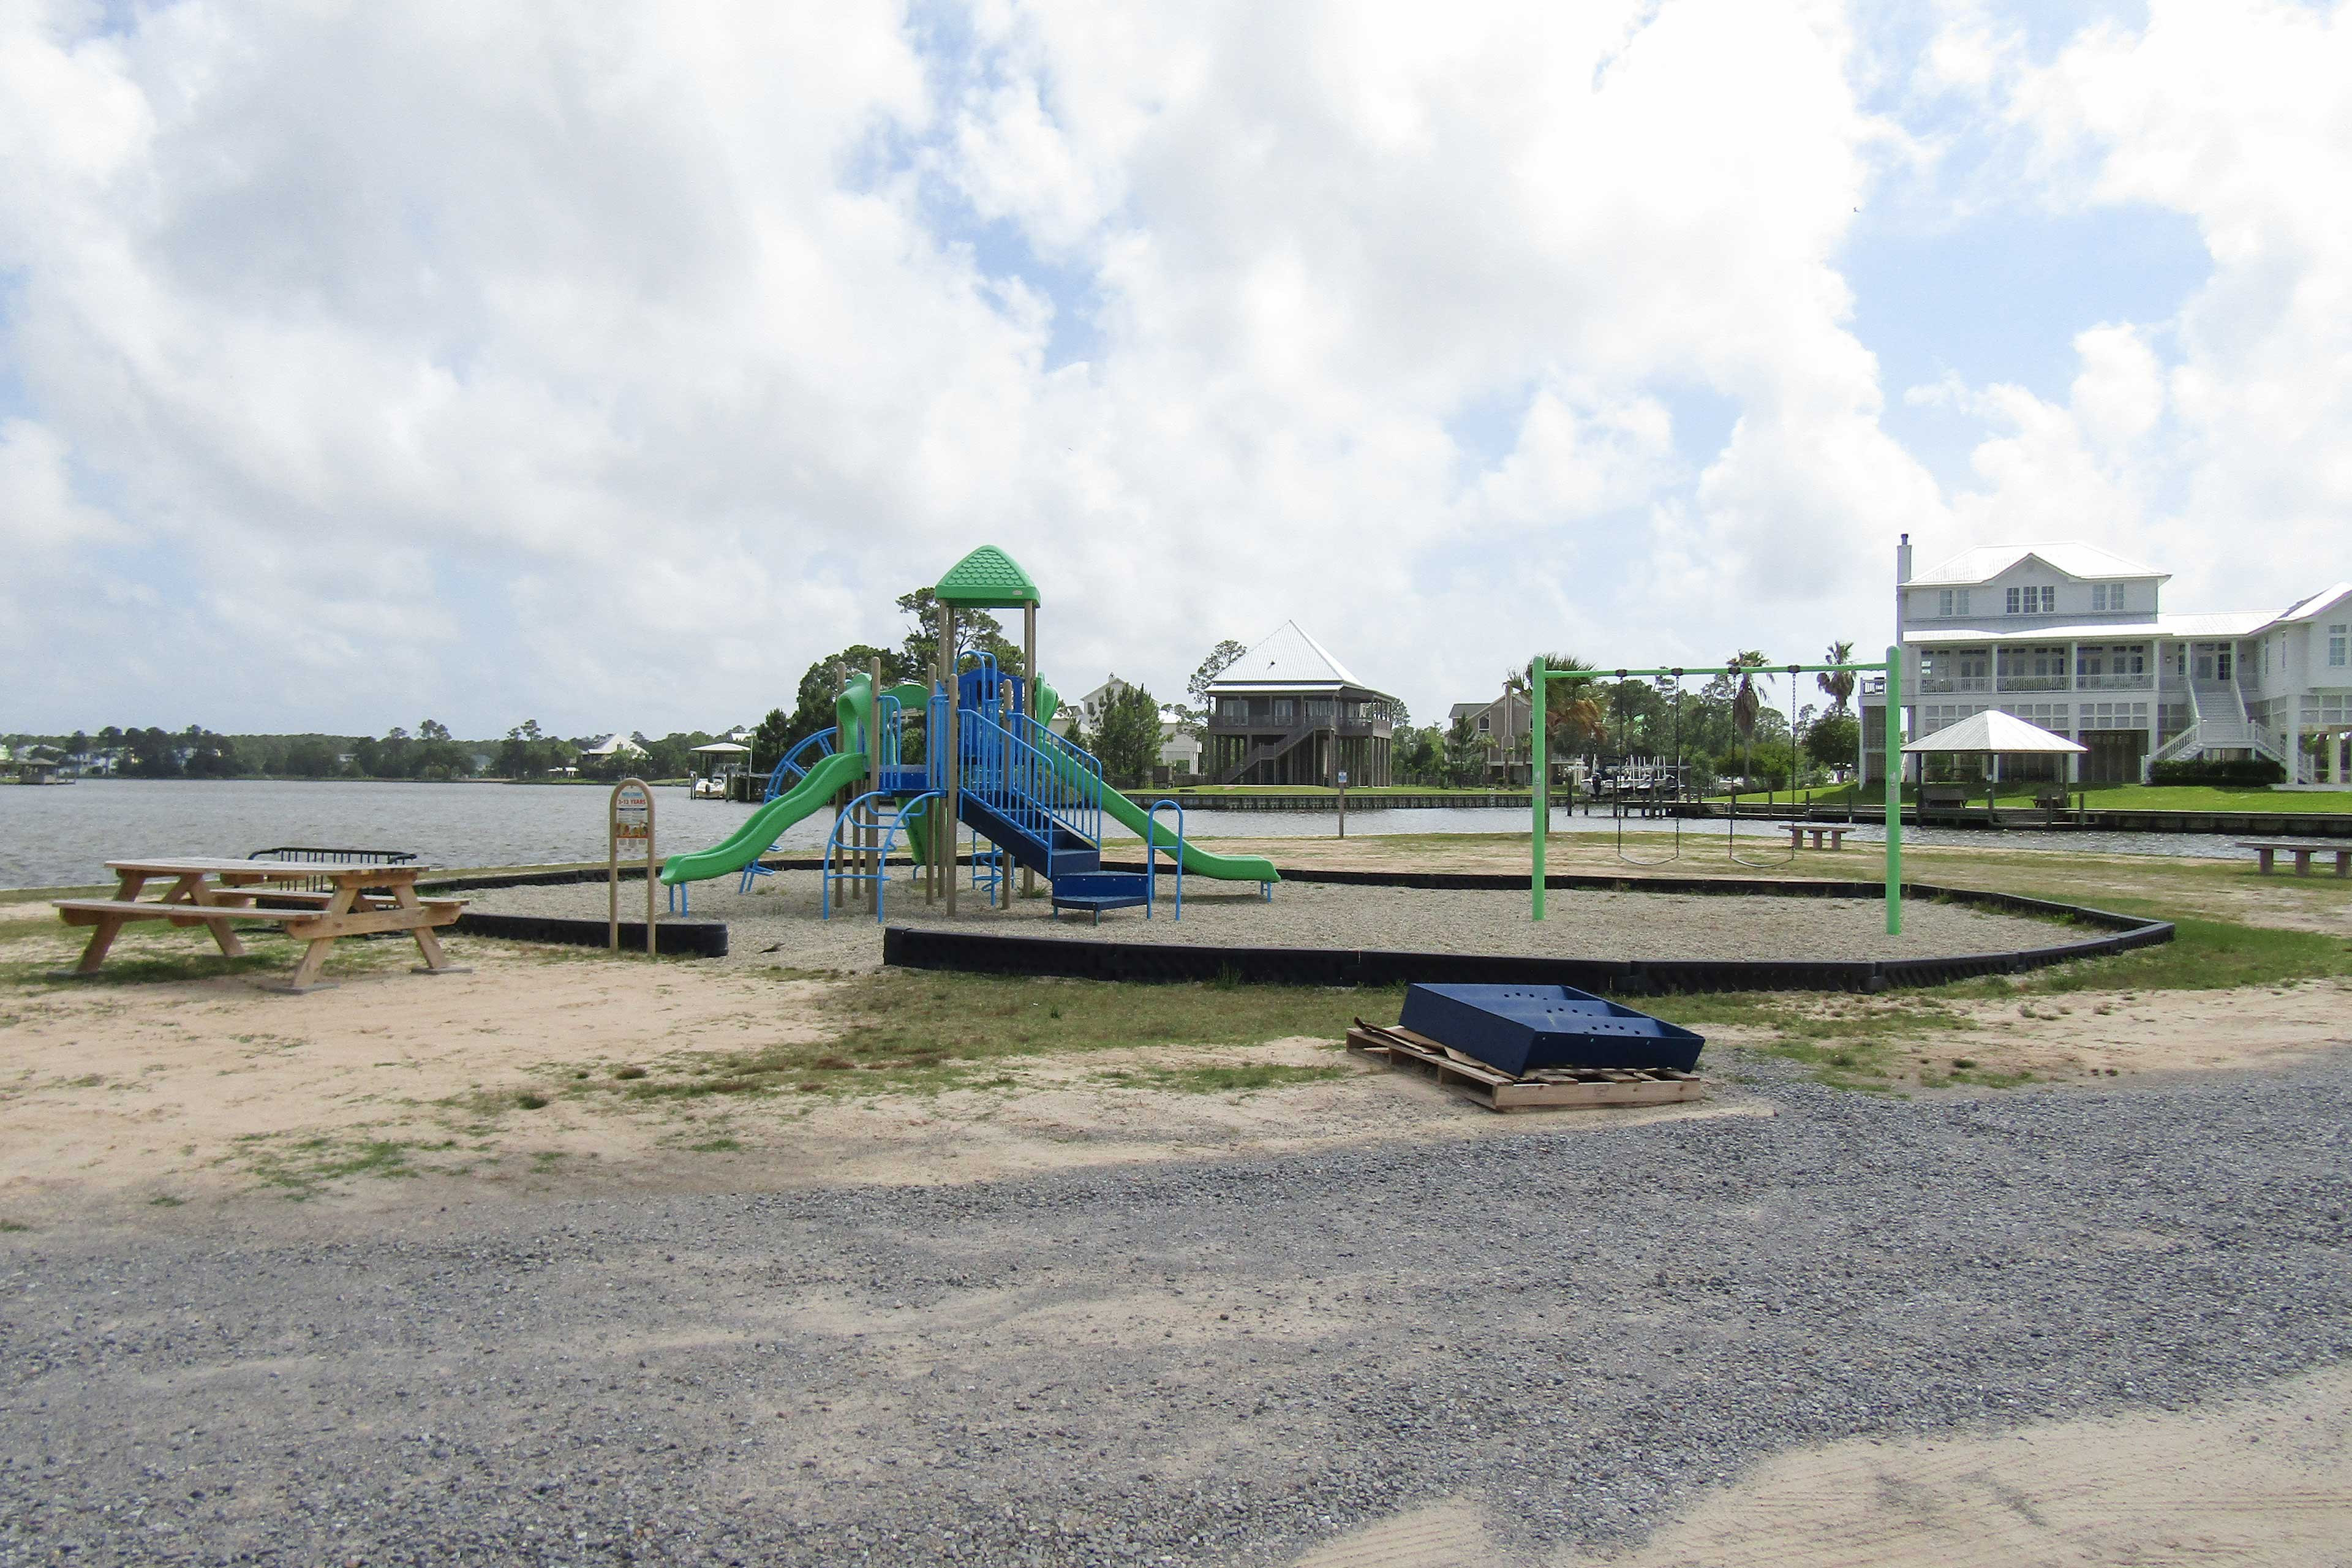 Let the kids run around on the playground and blow off energy.